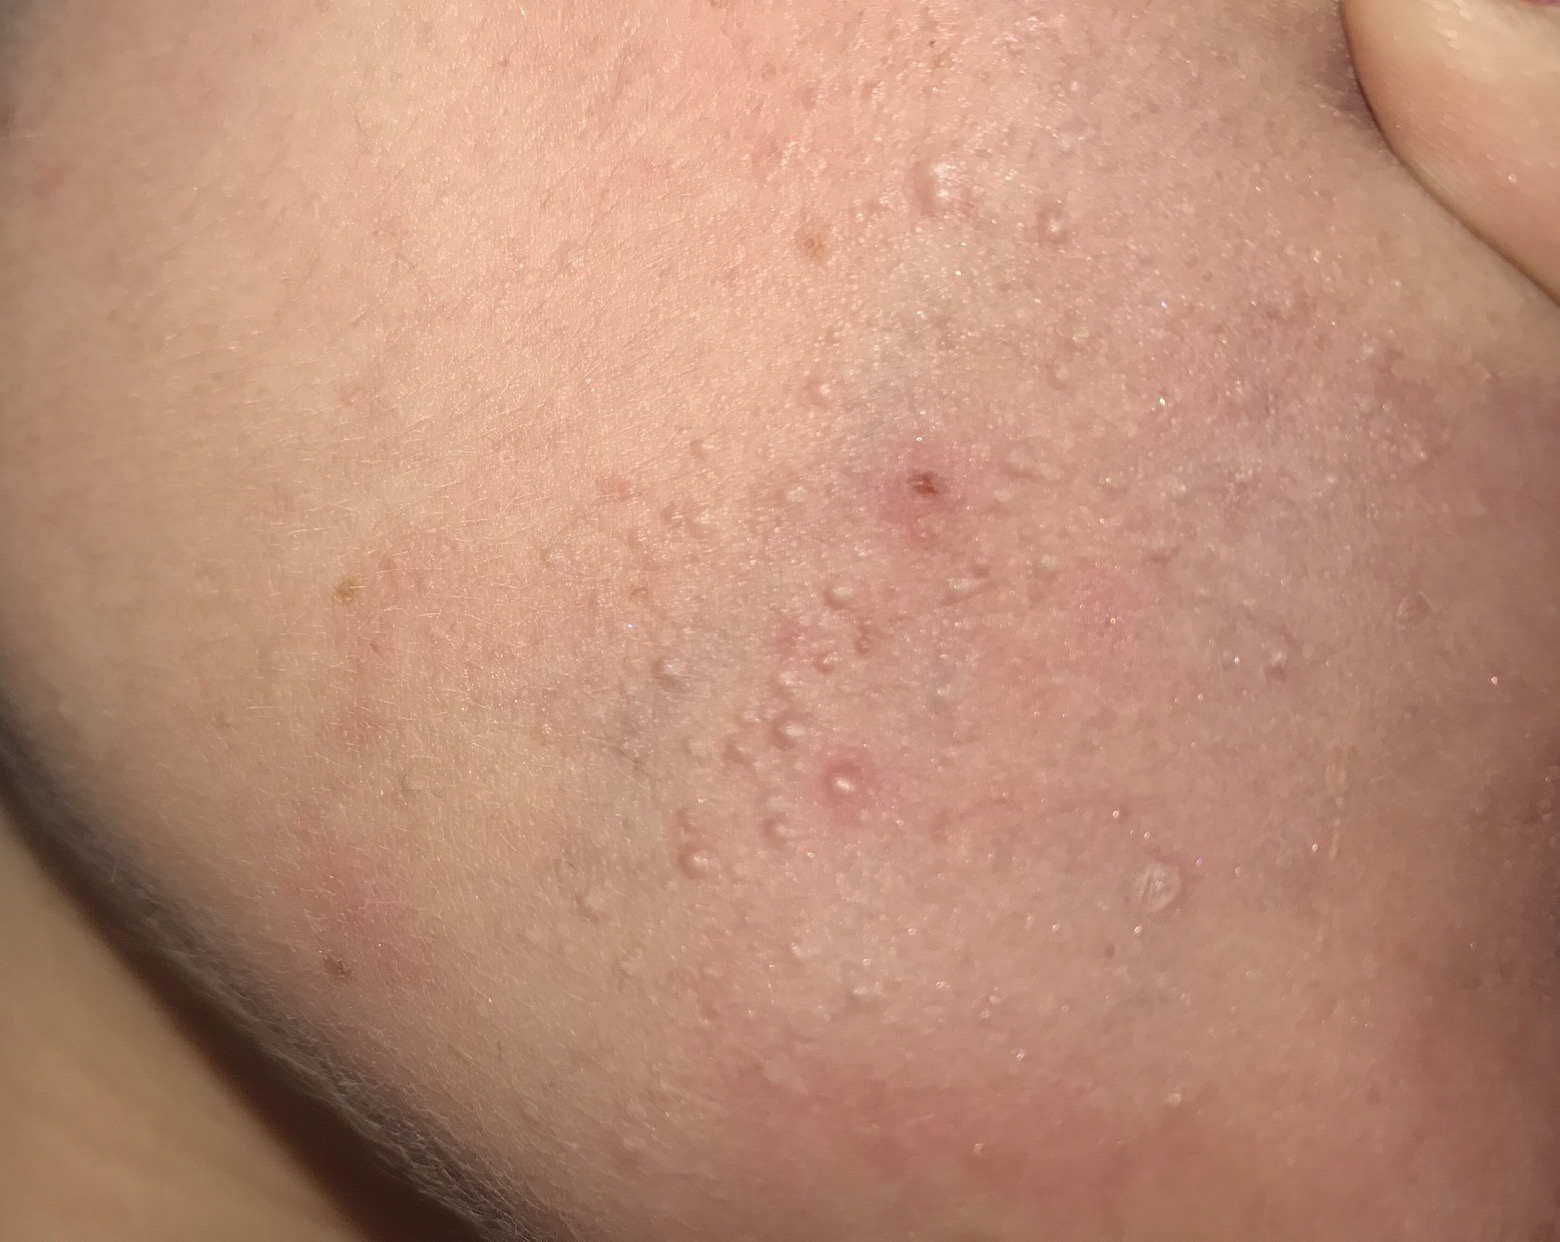 Facial white bumps under the skin picture 907